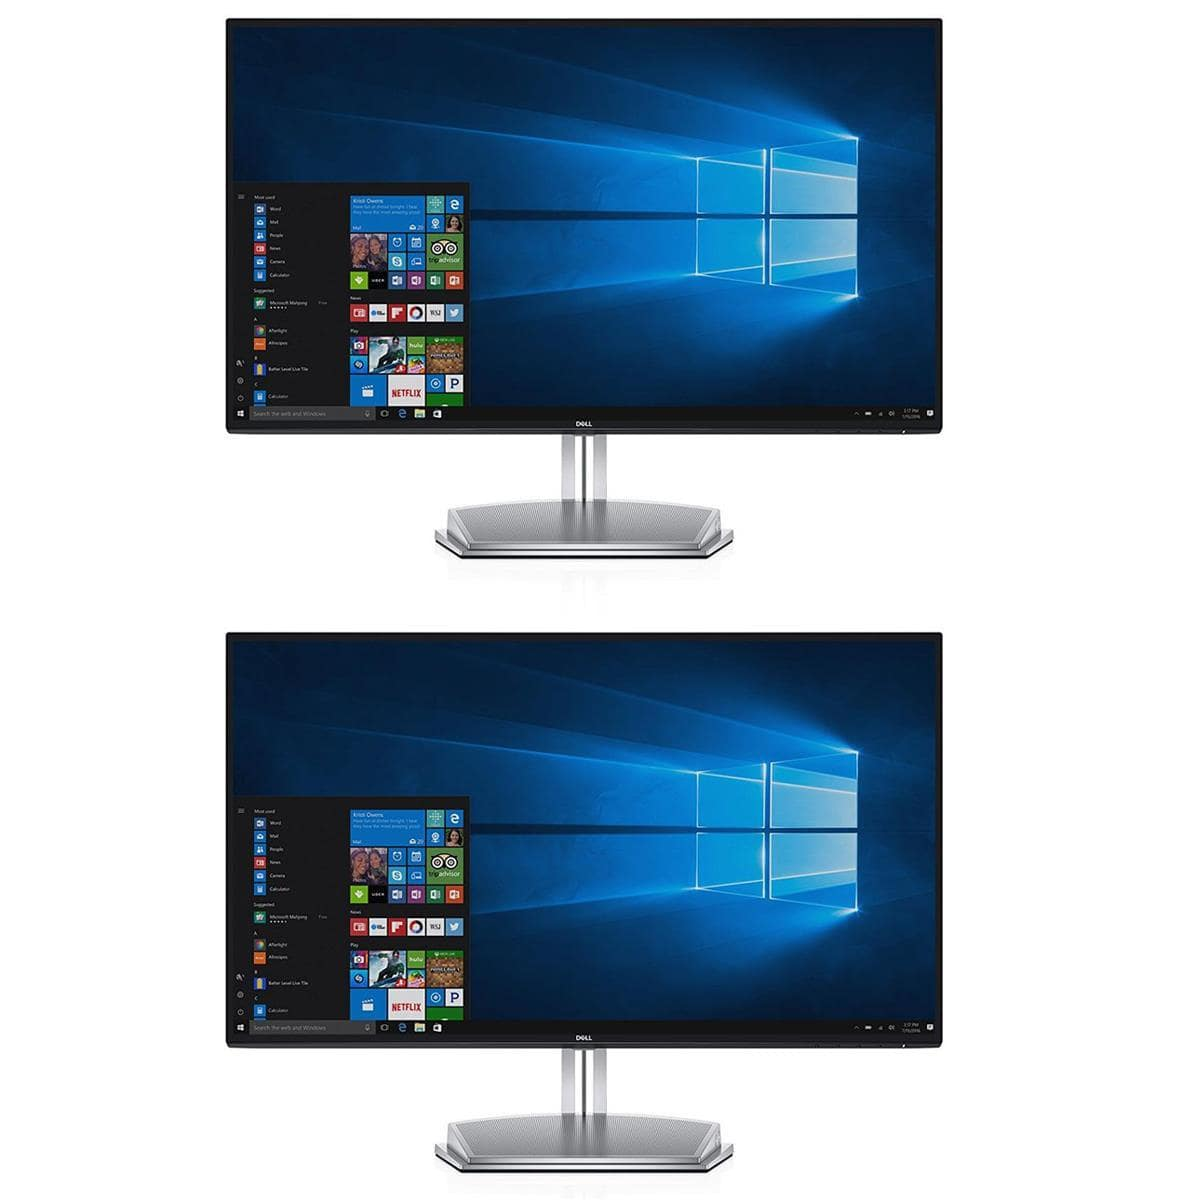 "(2-pack) 27"" Dell S2718H InfinityEdge 1080p Monitors $355 + free s/h"